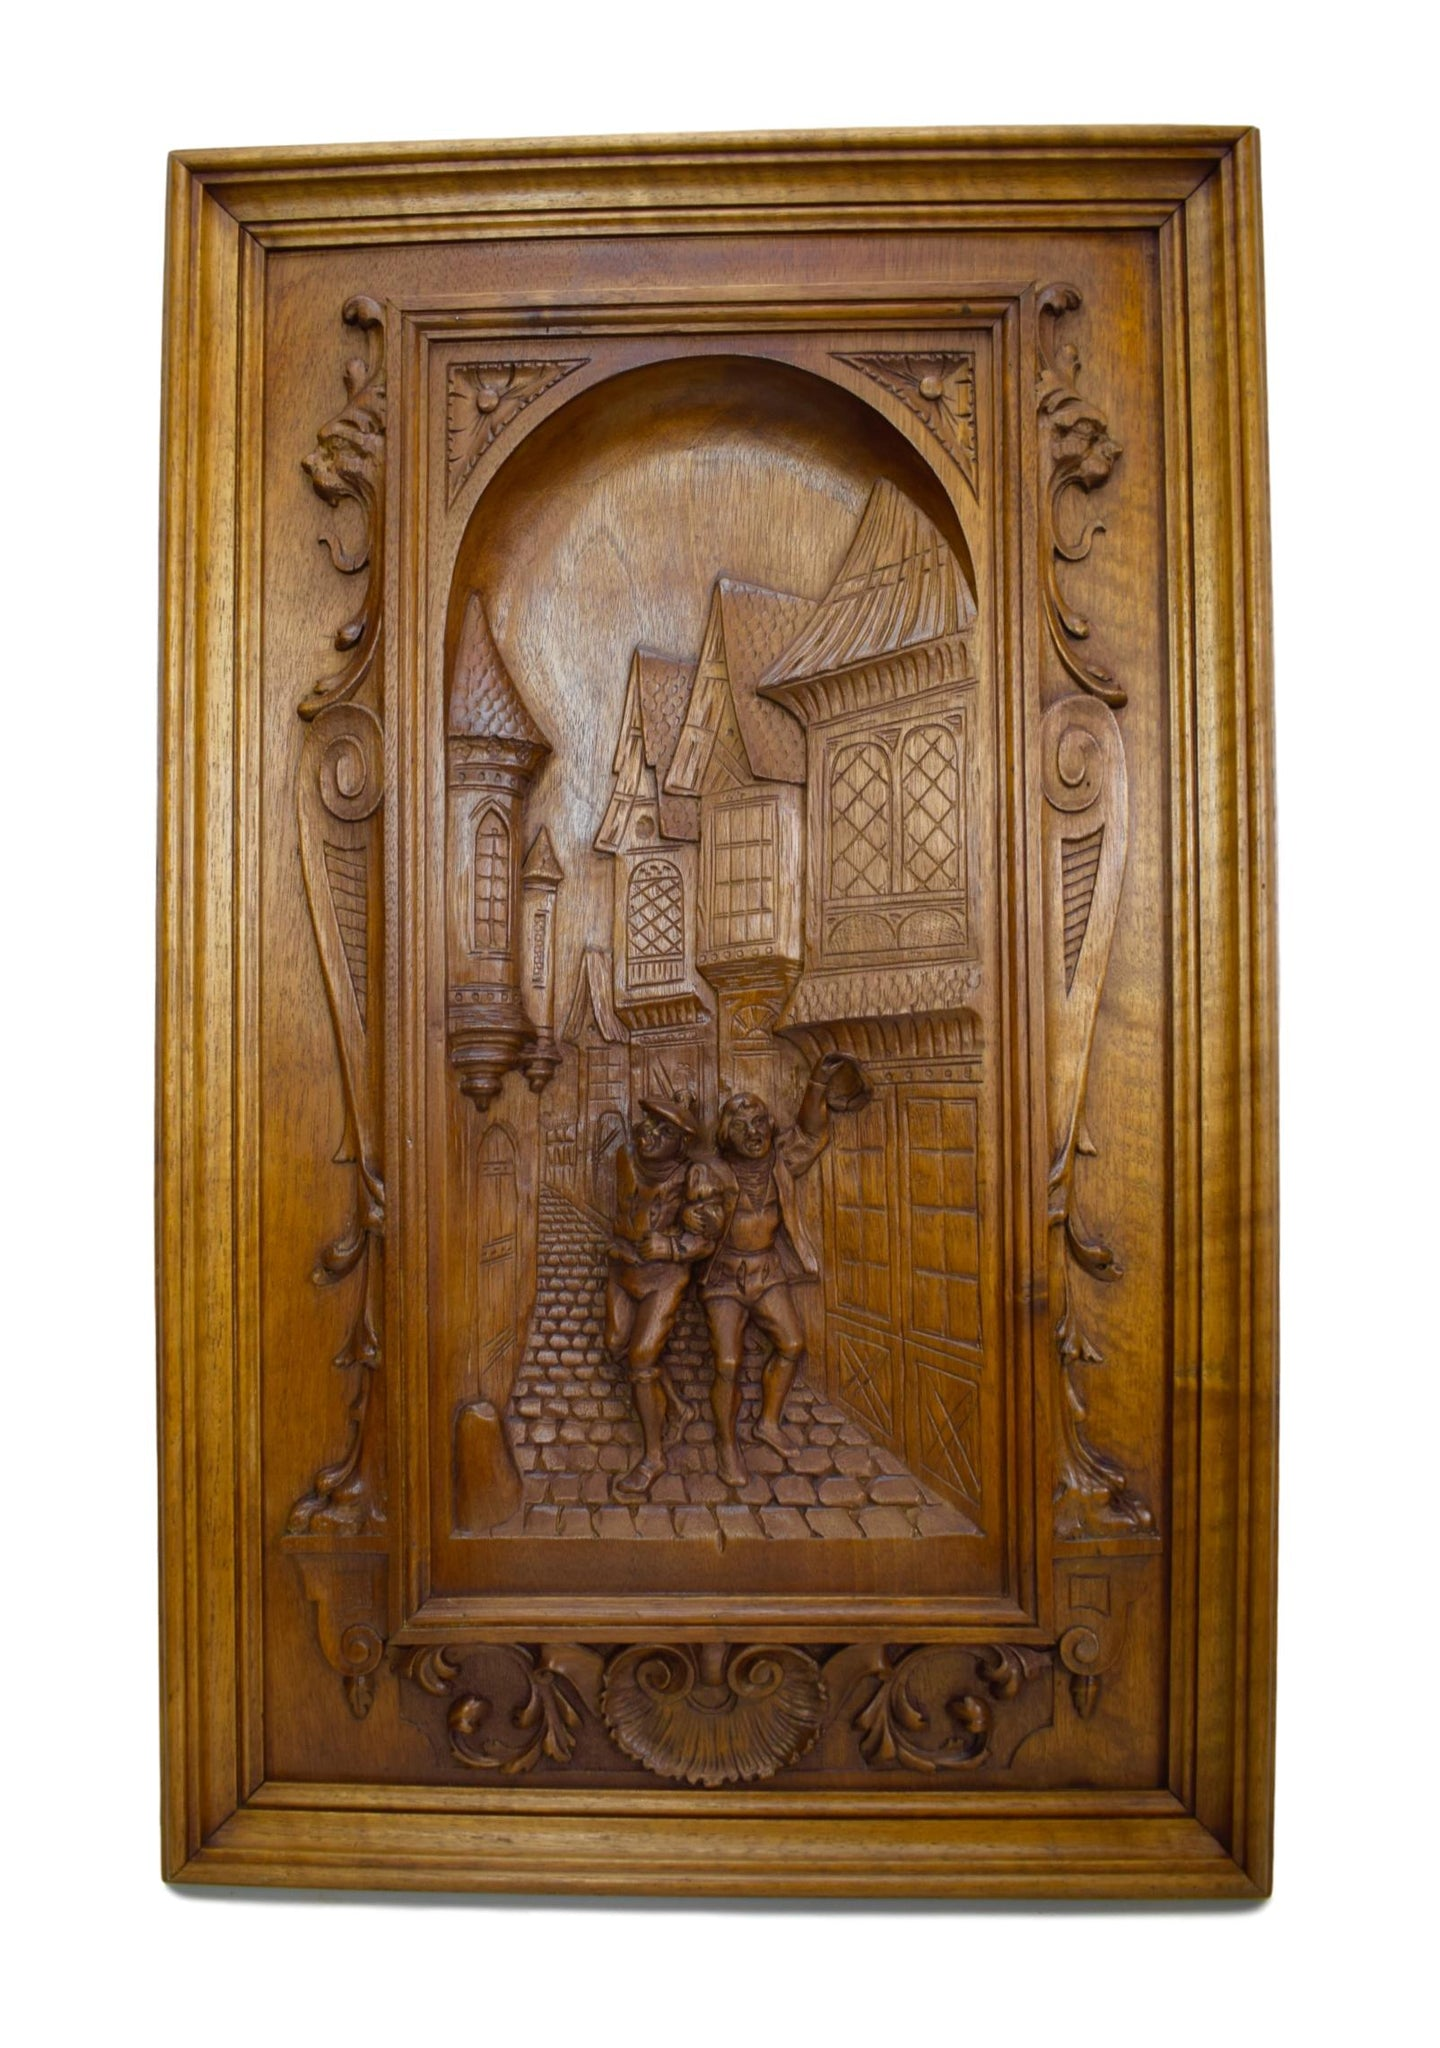 Fabulous French Antique Hand Carved Wood Wall Panel - Paneling Middle Ages - 19th Victorian Wall Carving